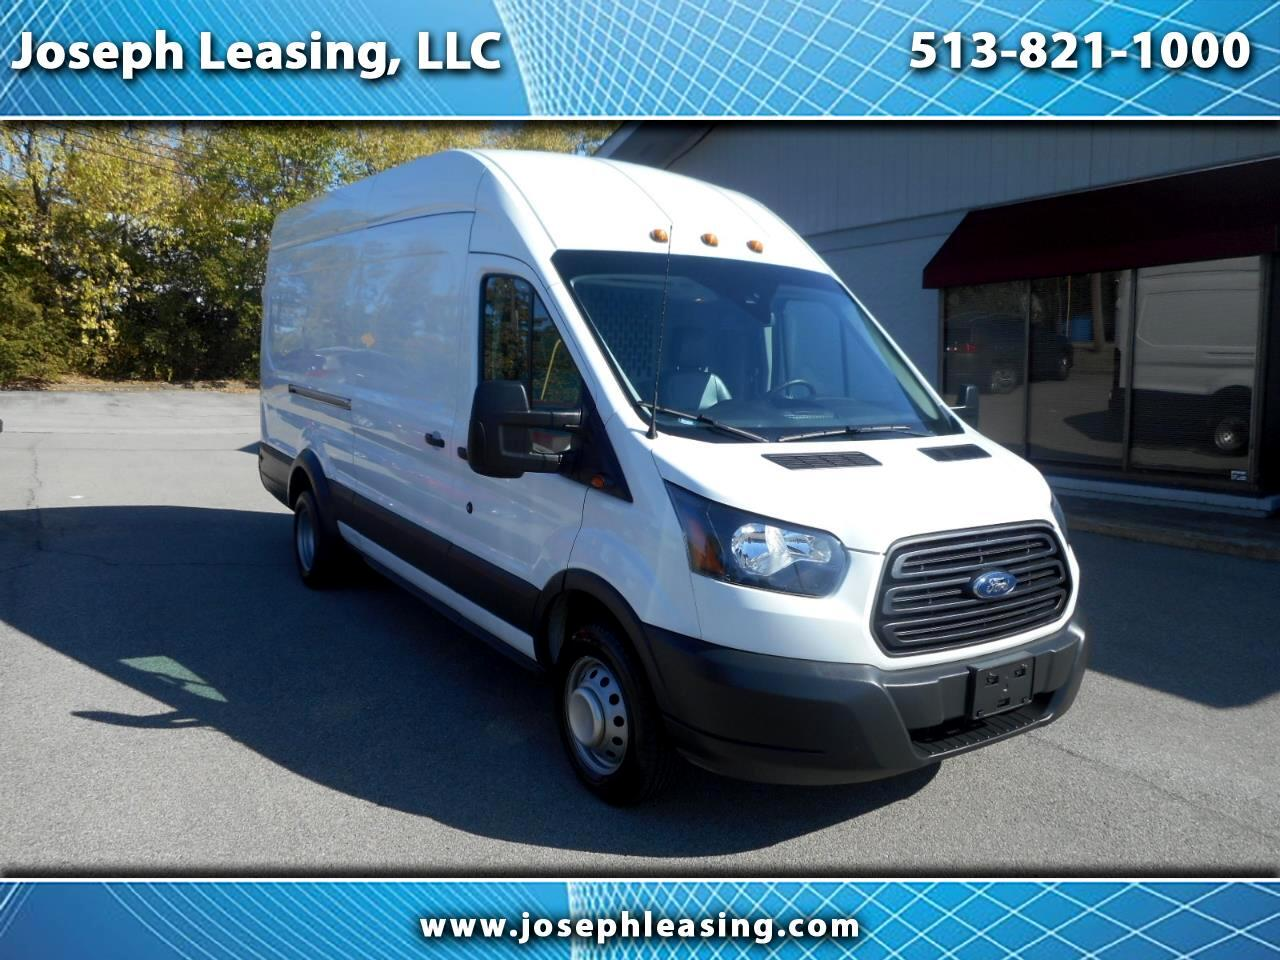 2017 Ford Transit 350 Van HD High Roof 10360lb GVWR Pass. Slide EL